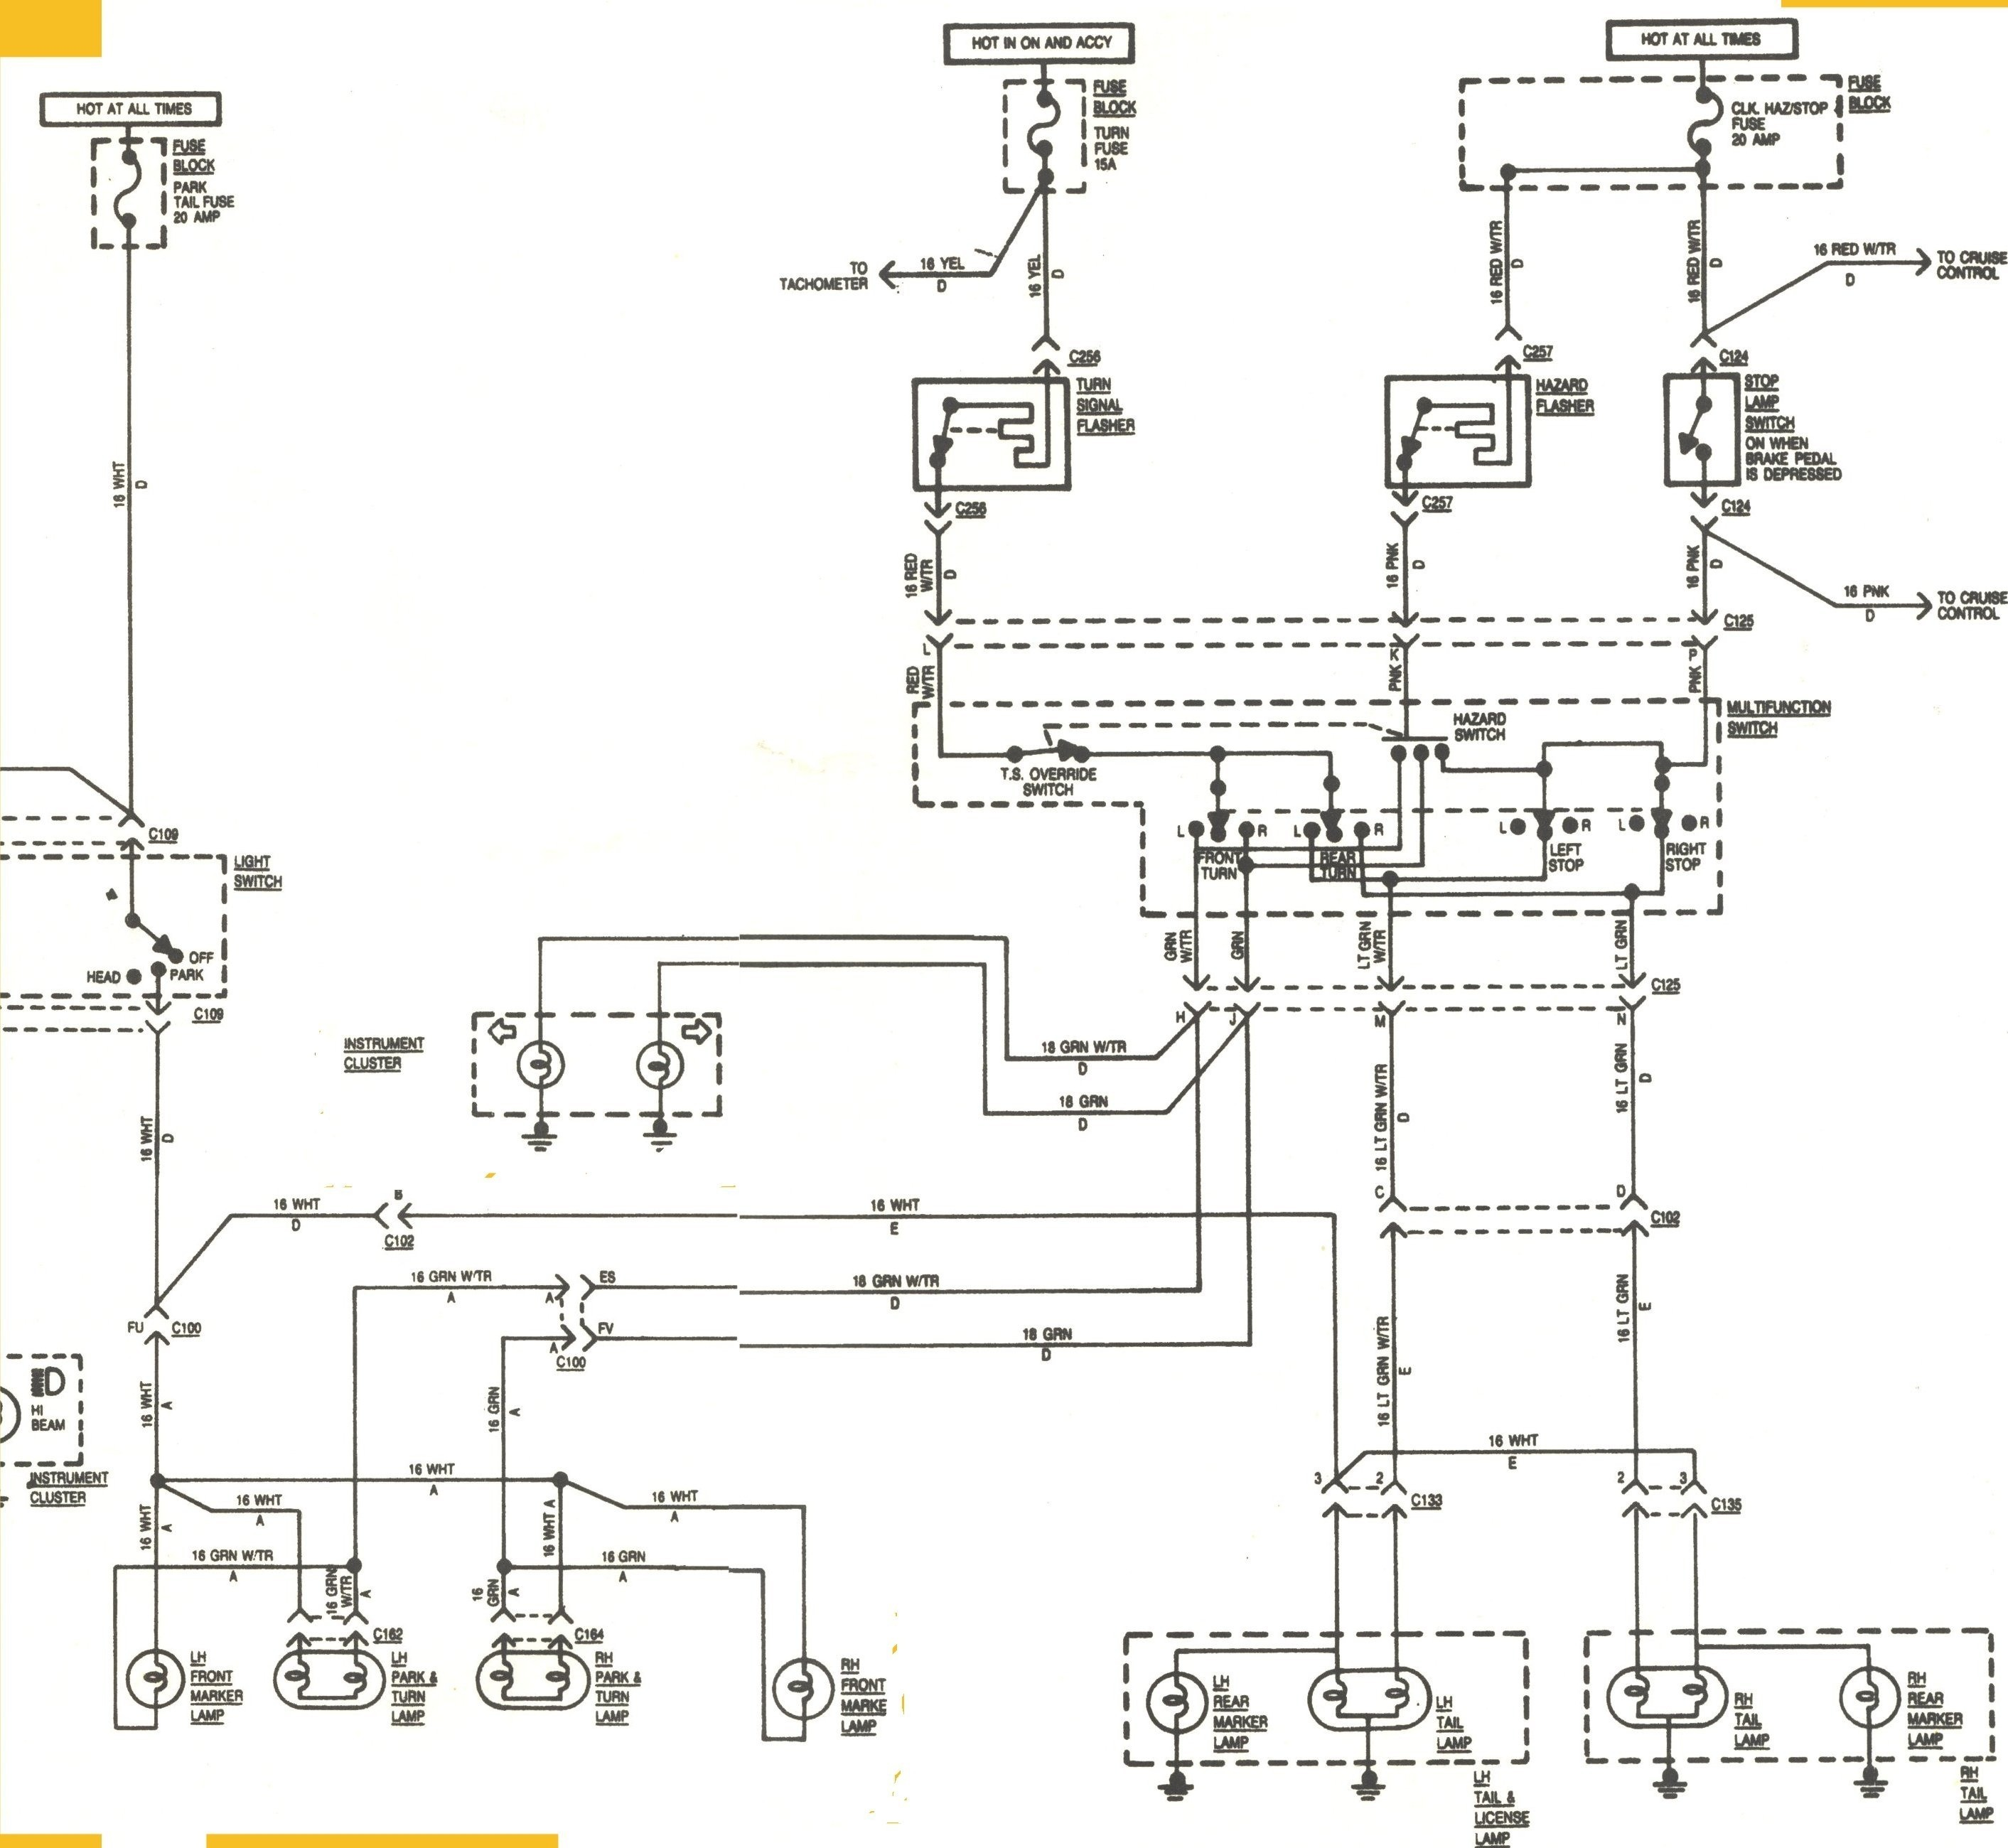 ... Turn Signal Switch Diagram 1973 1979 ford. Related Post